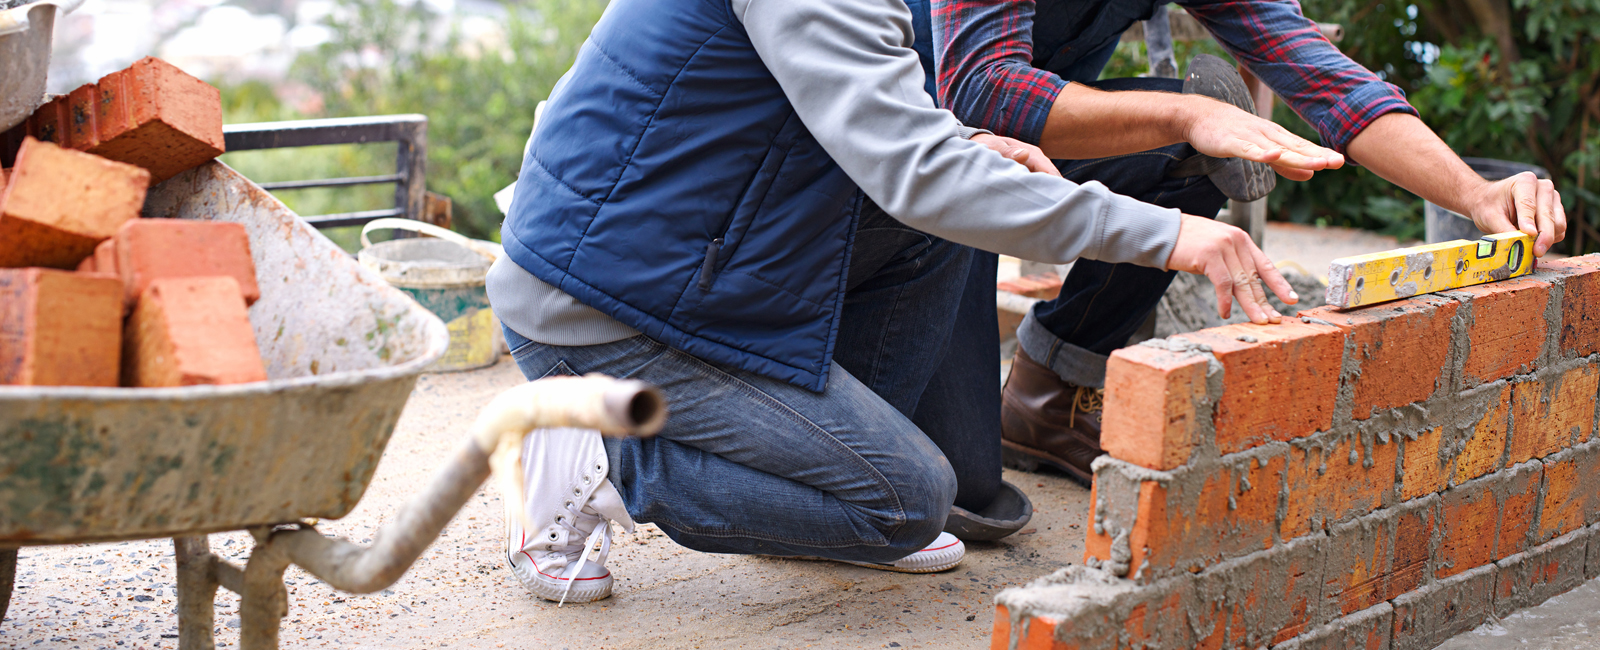 Maintenance and repairs for homeowners